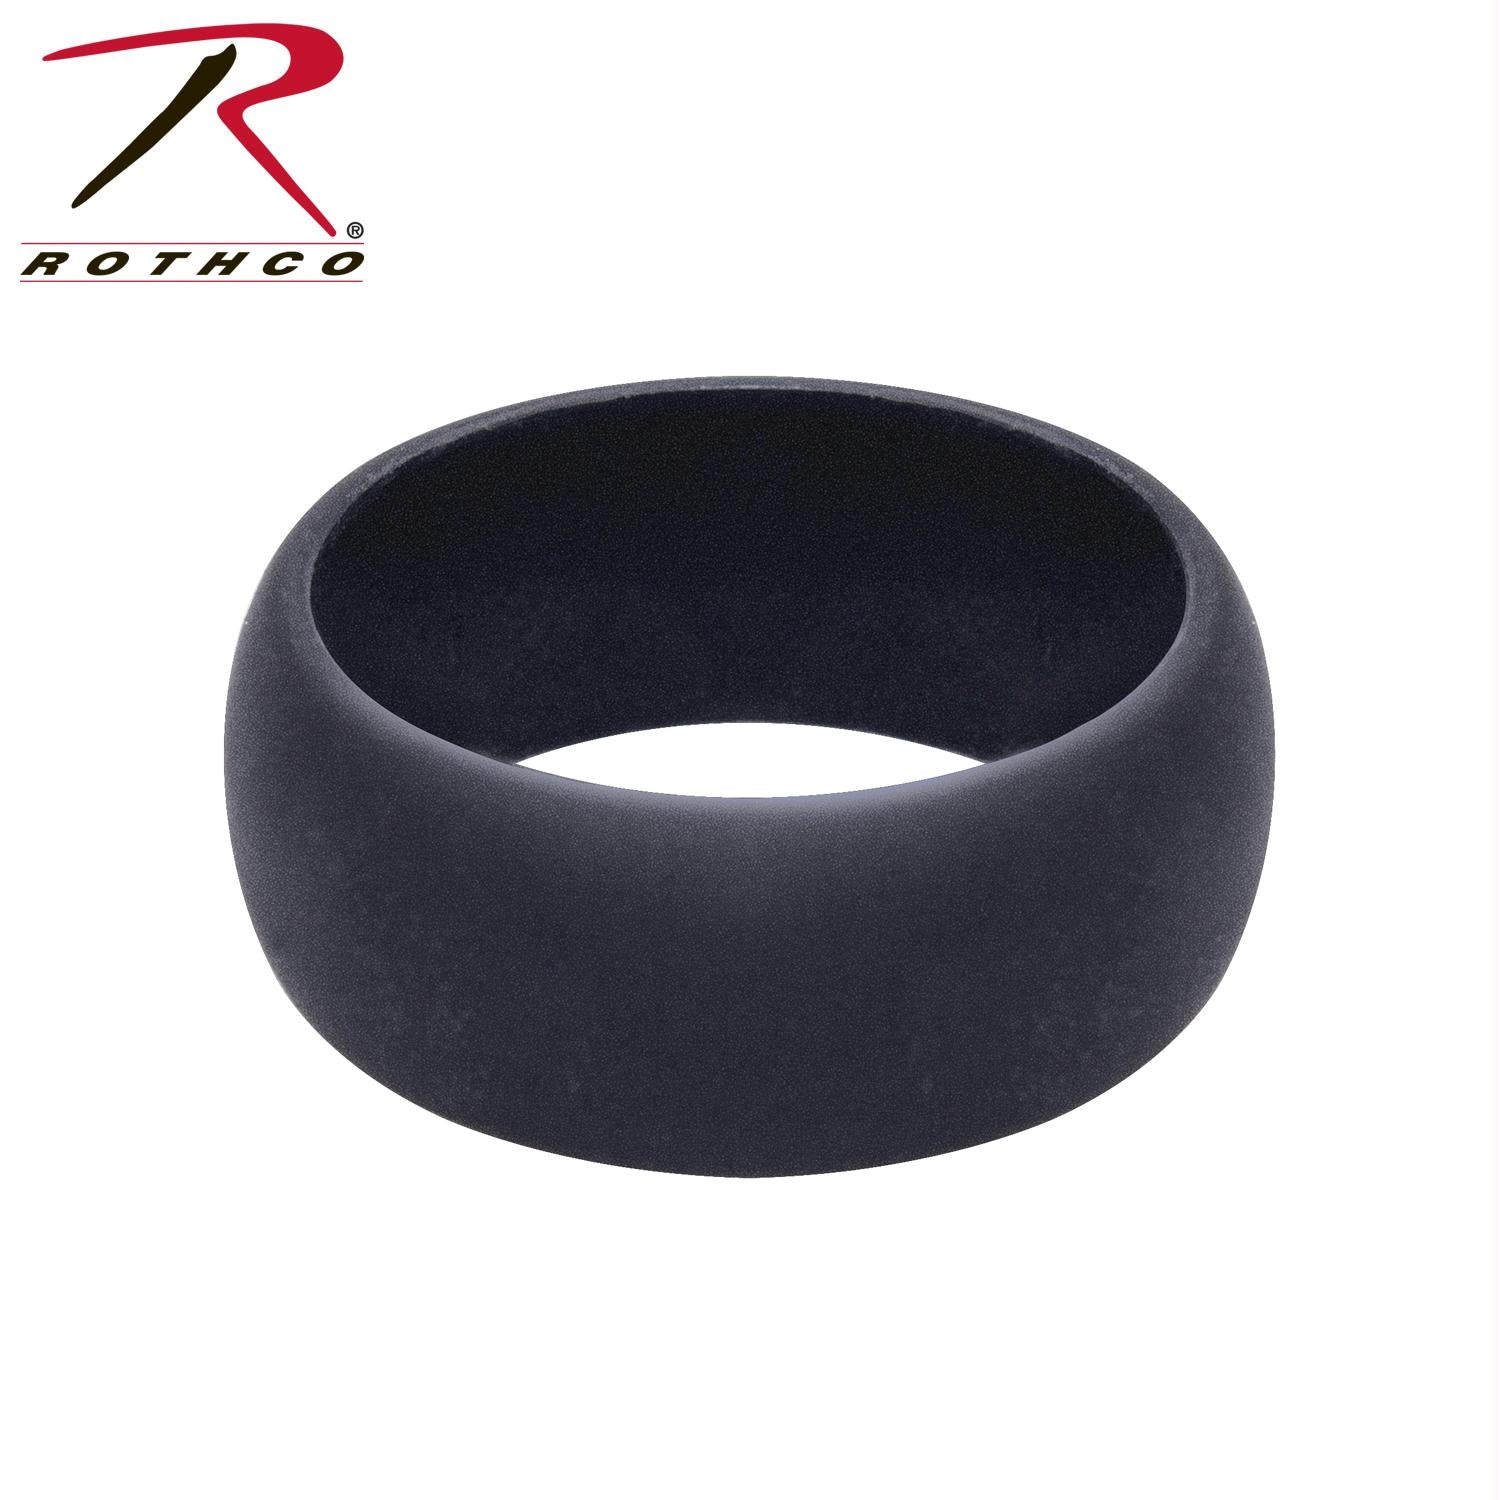 Rothco Silicone Ring - Ring Size 10 (2 7/16 inches)